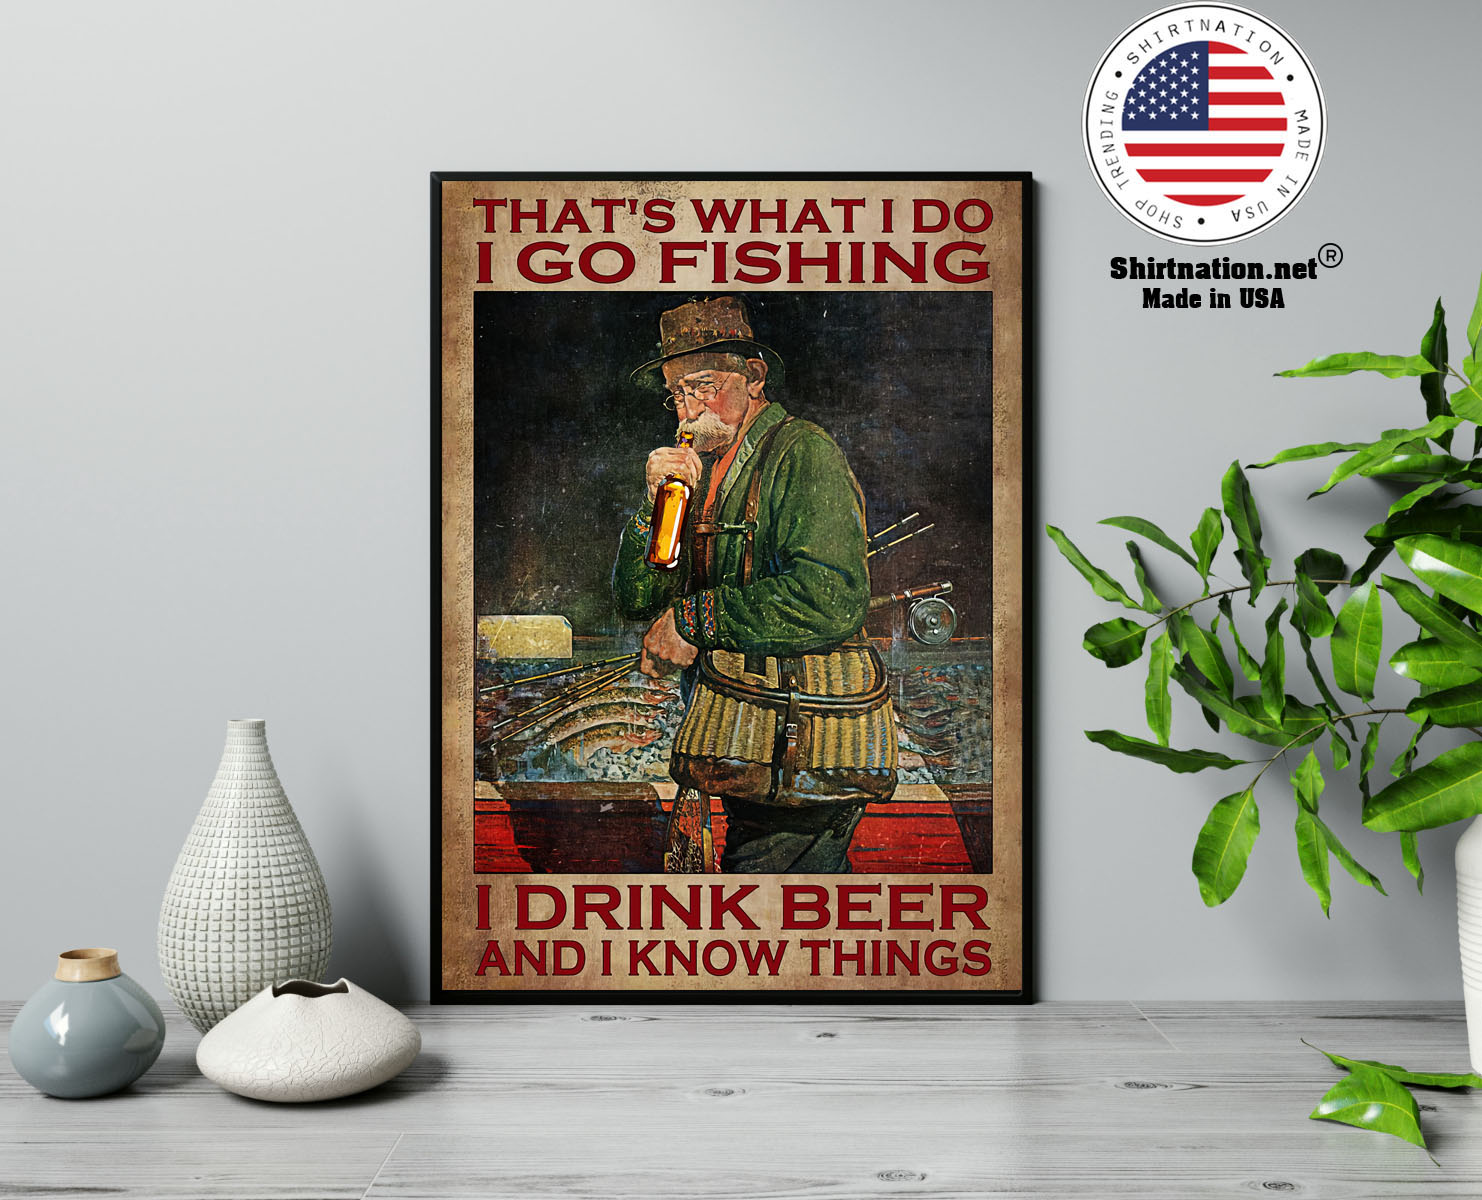 Old man Thats what I do I go fishing I drink beer and I know things poster 13